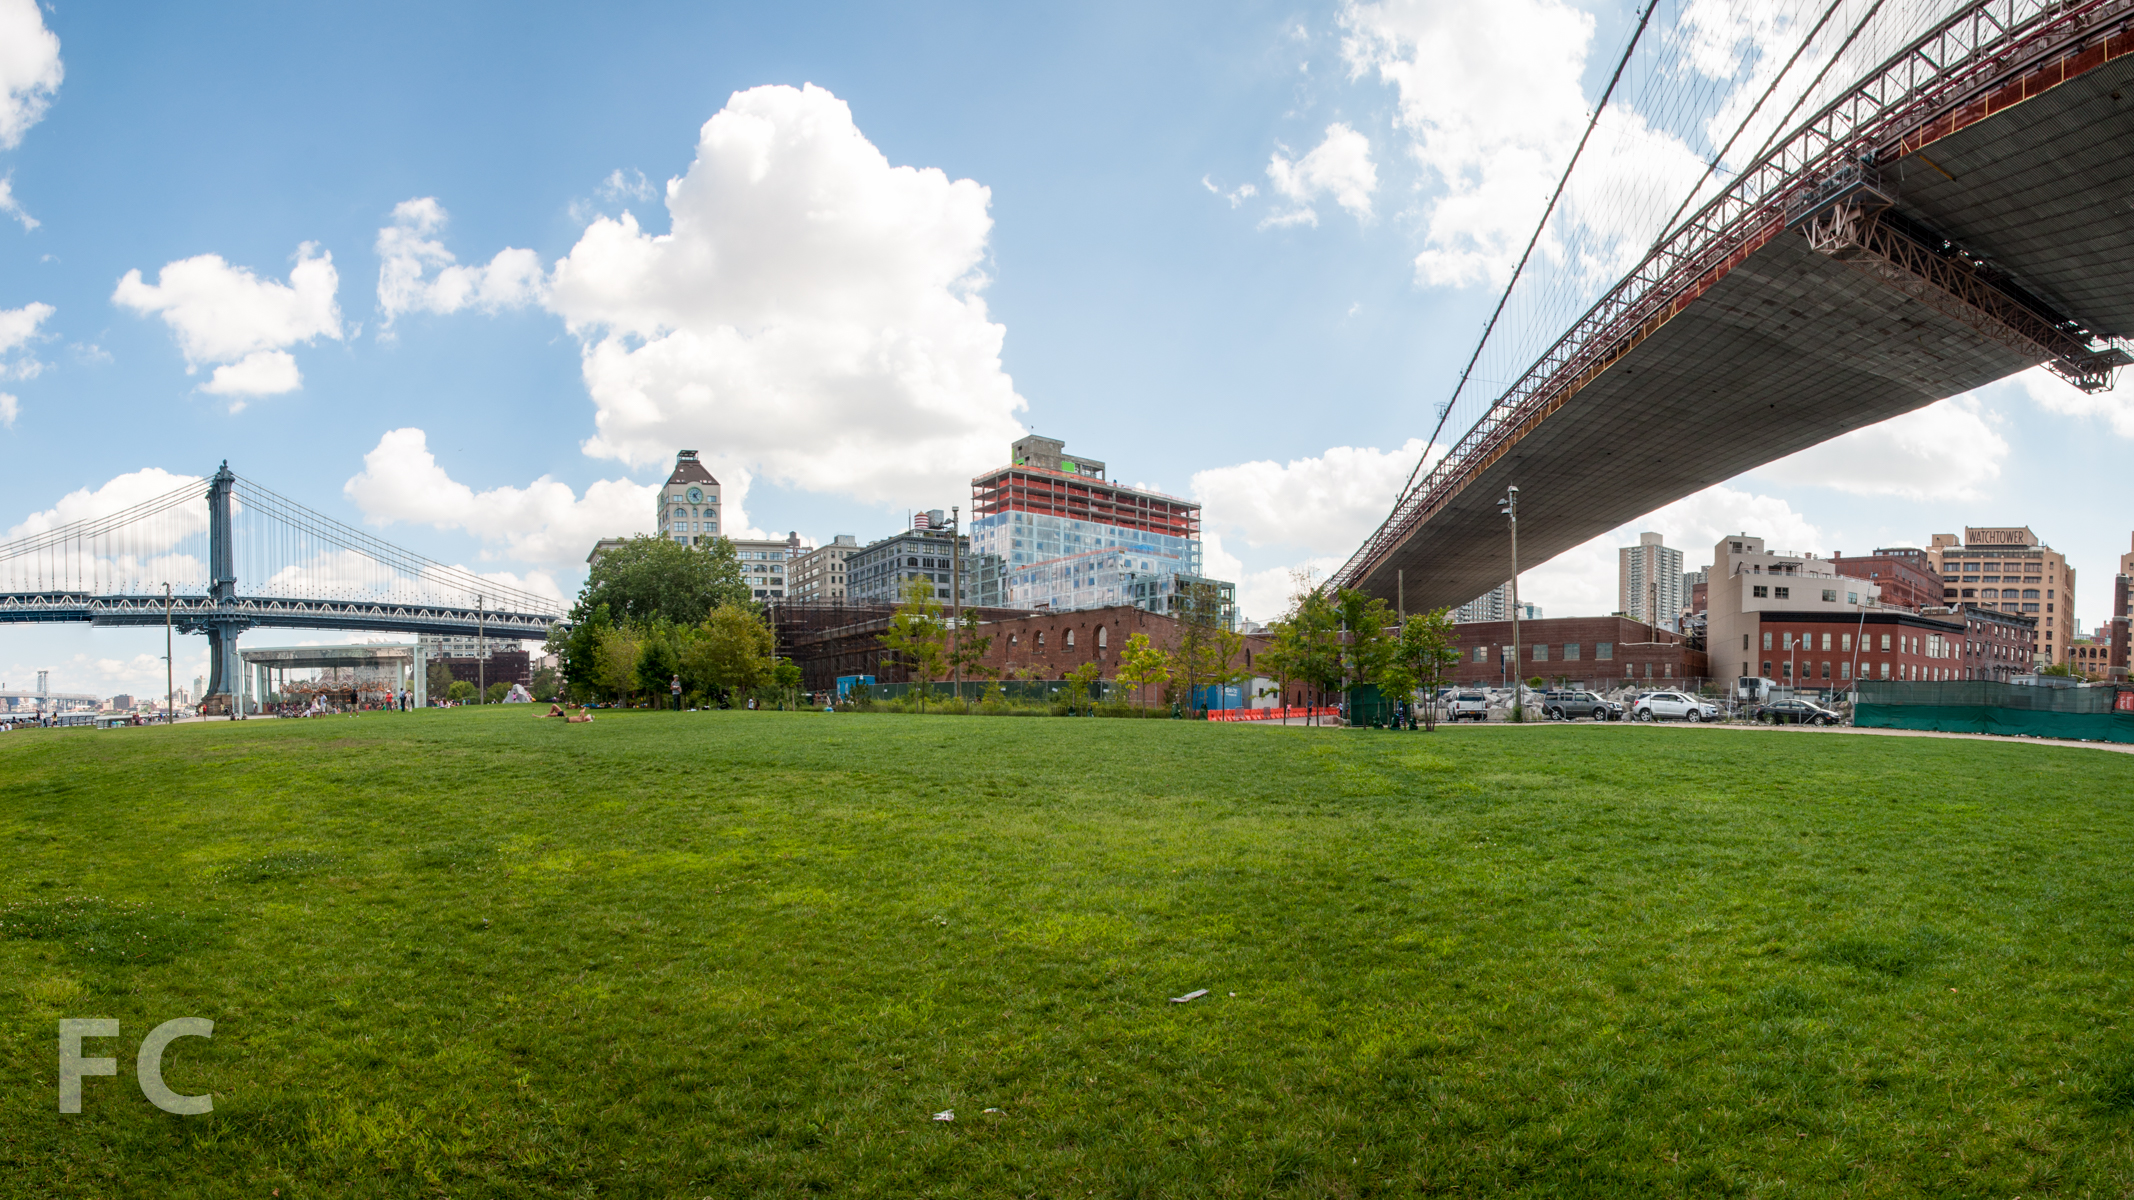 Looking southeast from Empire Fulton Ferry Park.